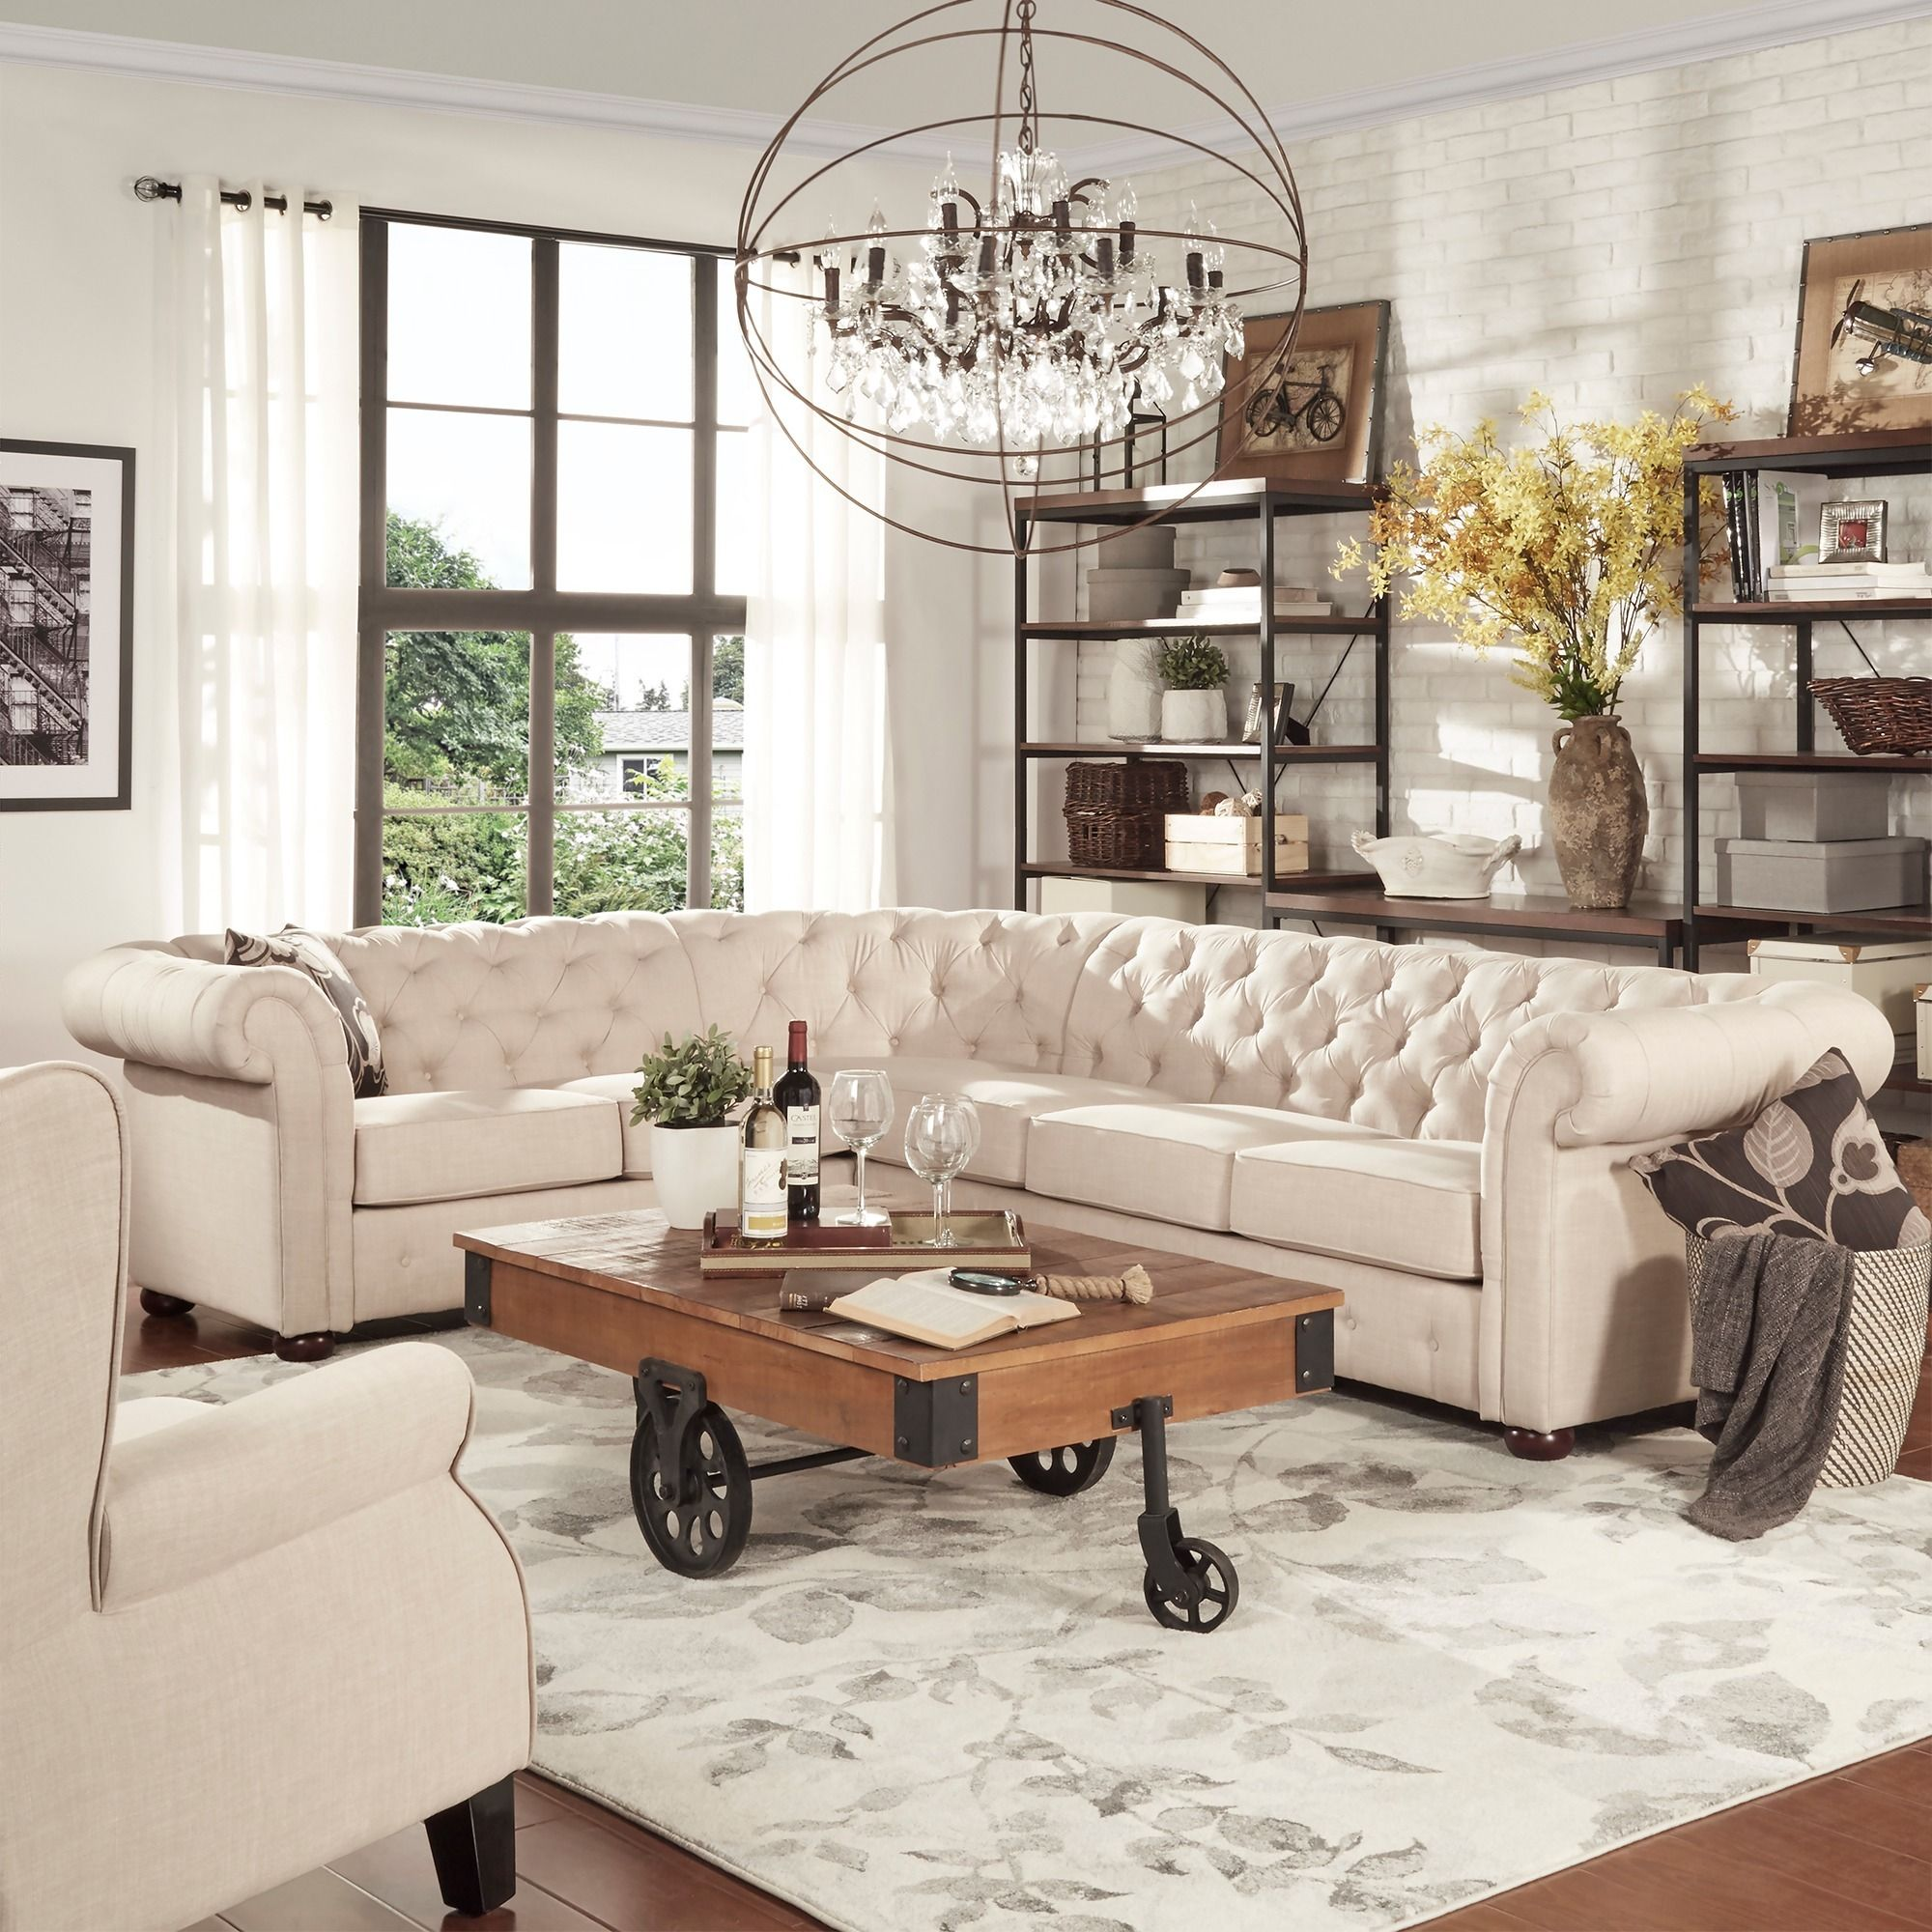 23 Stunning Living Room Designs to Inspire Your Next Remodel ...